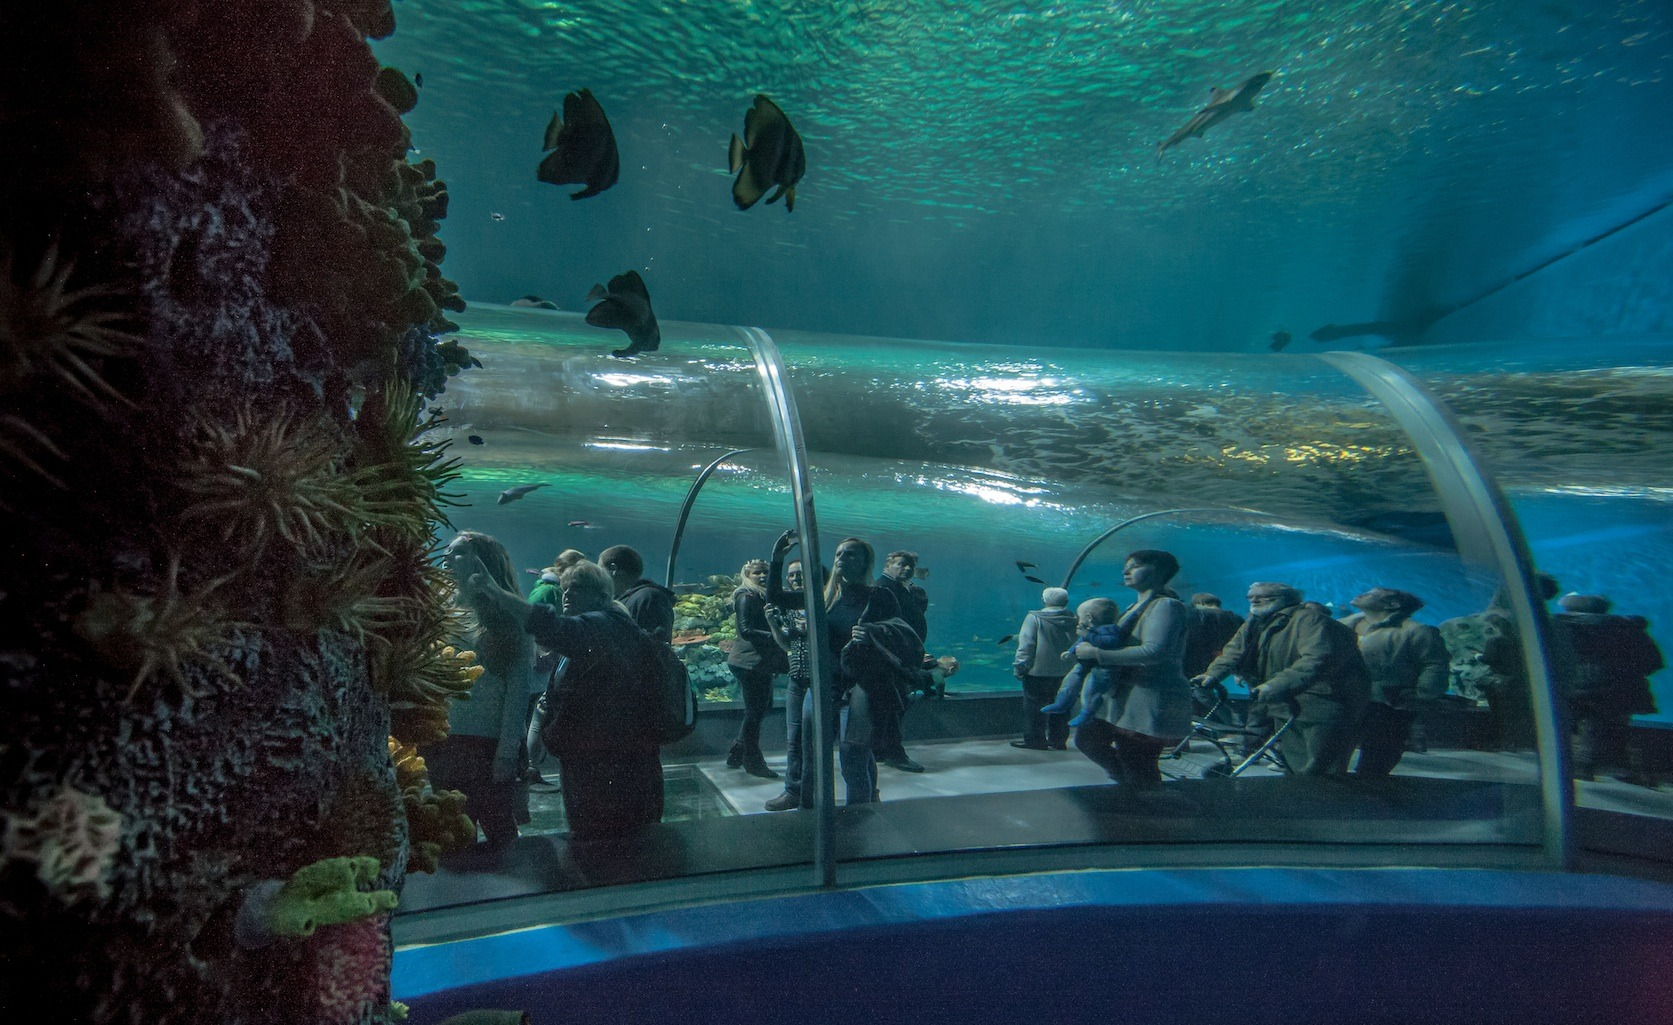 ... - The Blue Planet Public Aquarium Reef Coral and Exotic Fishes